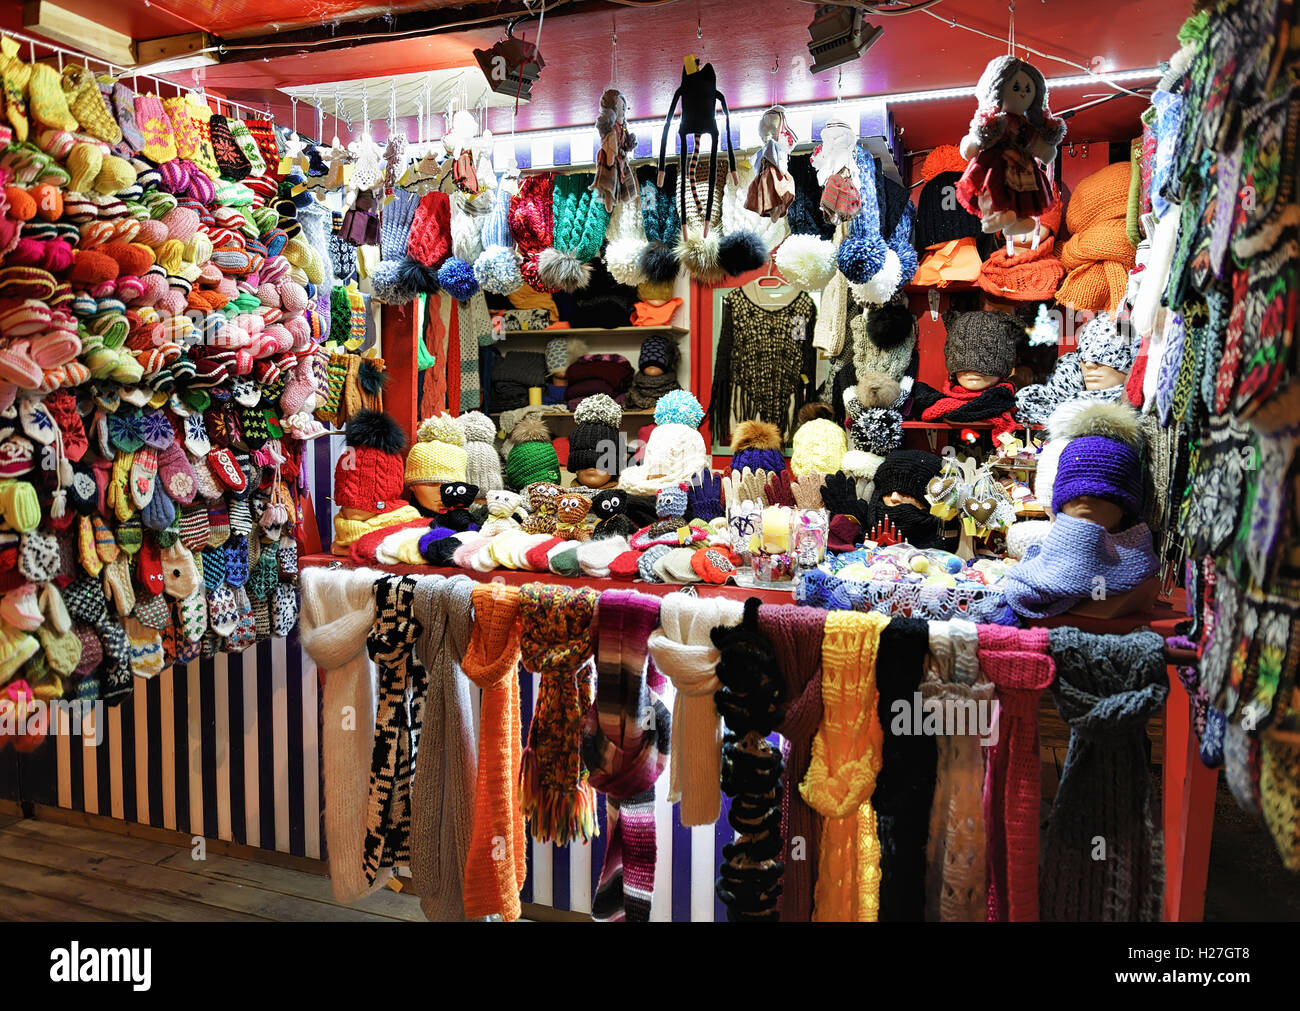 Warm colorful mittens, gloves, socks and hats at one of the stalls at the street Christmas Market in Riga, Latvia. Stock Photo